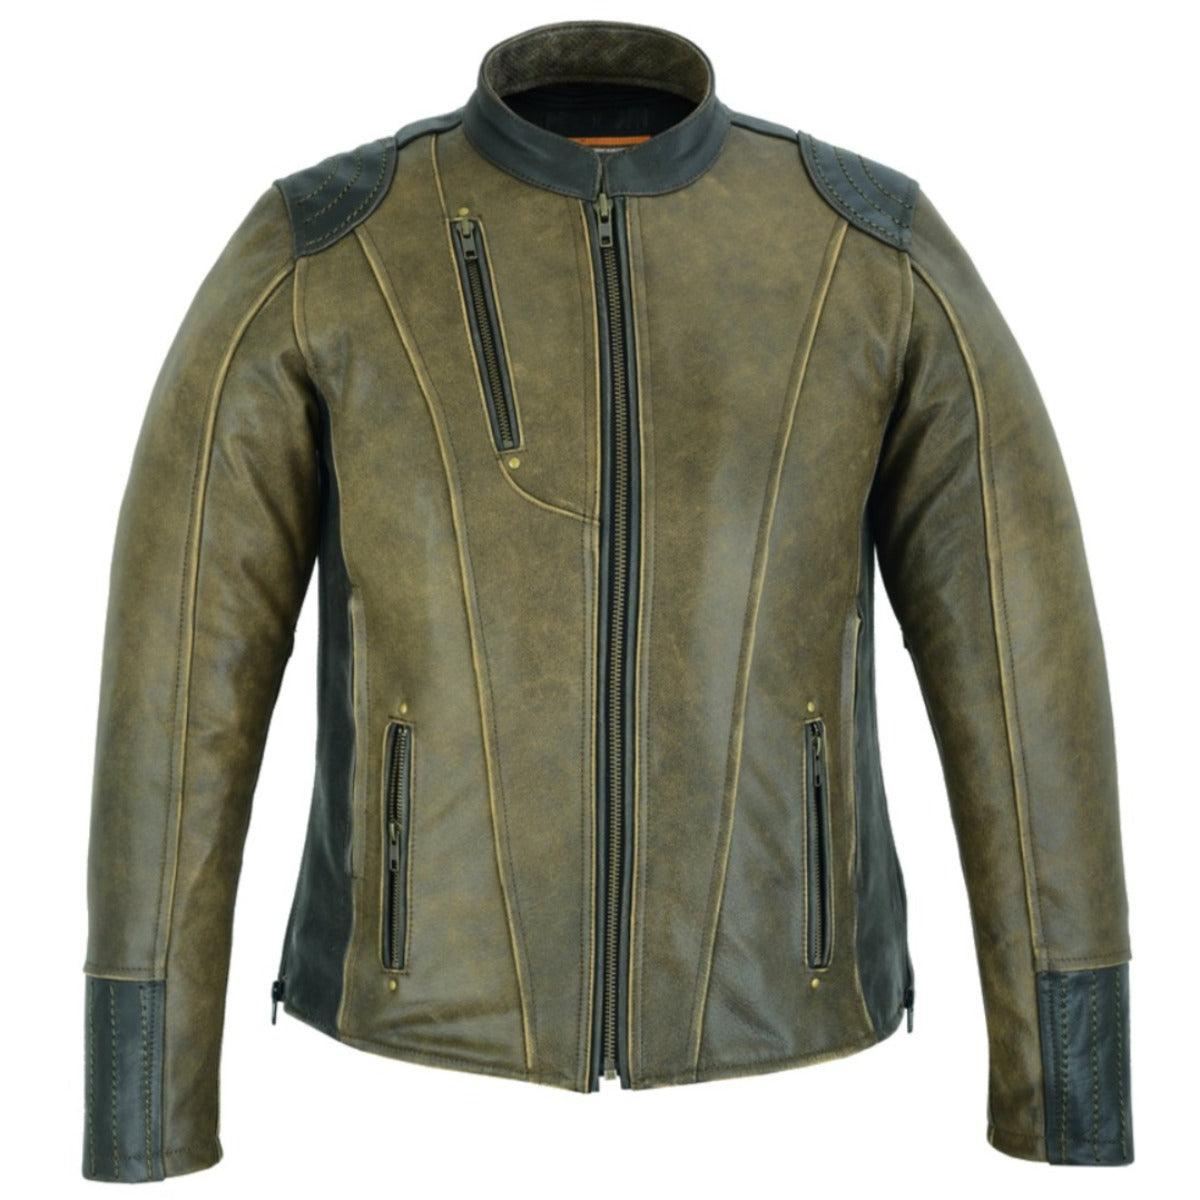 Daniel Smart Women's Dressed to the Nine Motorcycle Leather Jacket, Vintage Brown